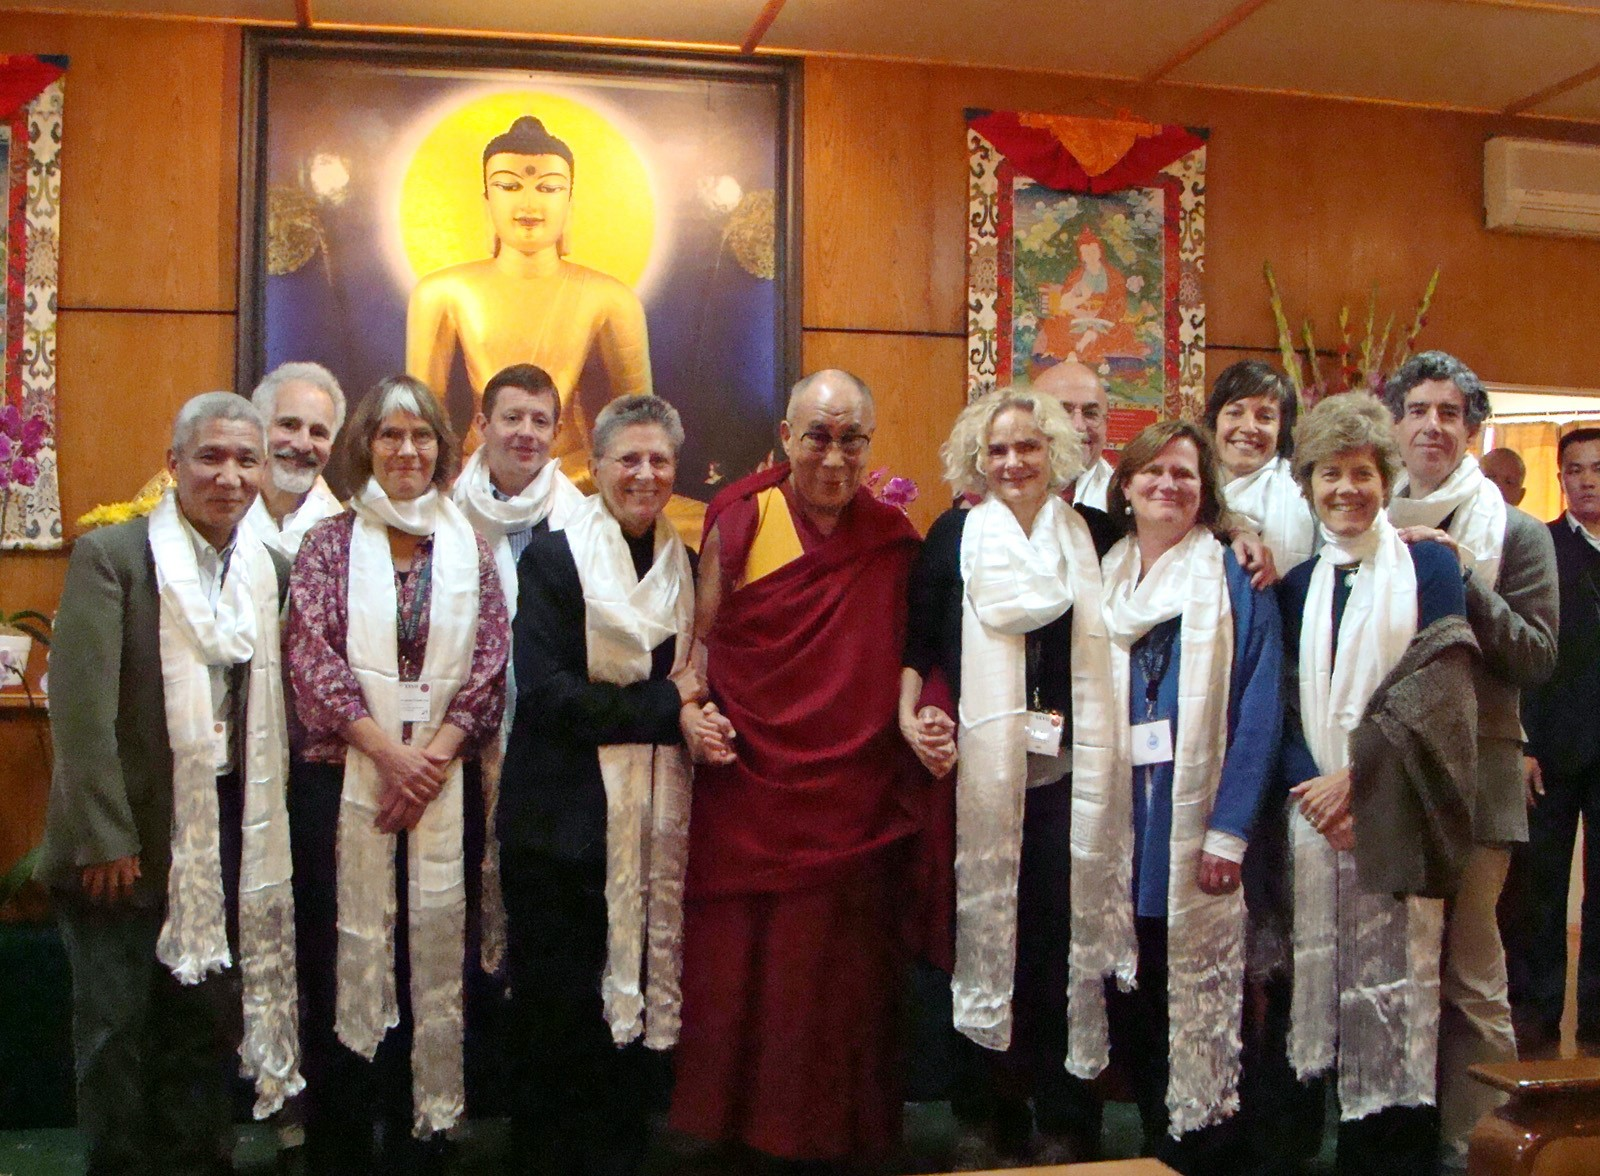 Dr. Nora Volkow with the Dalai Lama and other participants in the Mind and Life Conference on Craving, Desire and Addiction in Dharamsala, India.